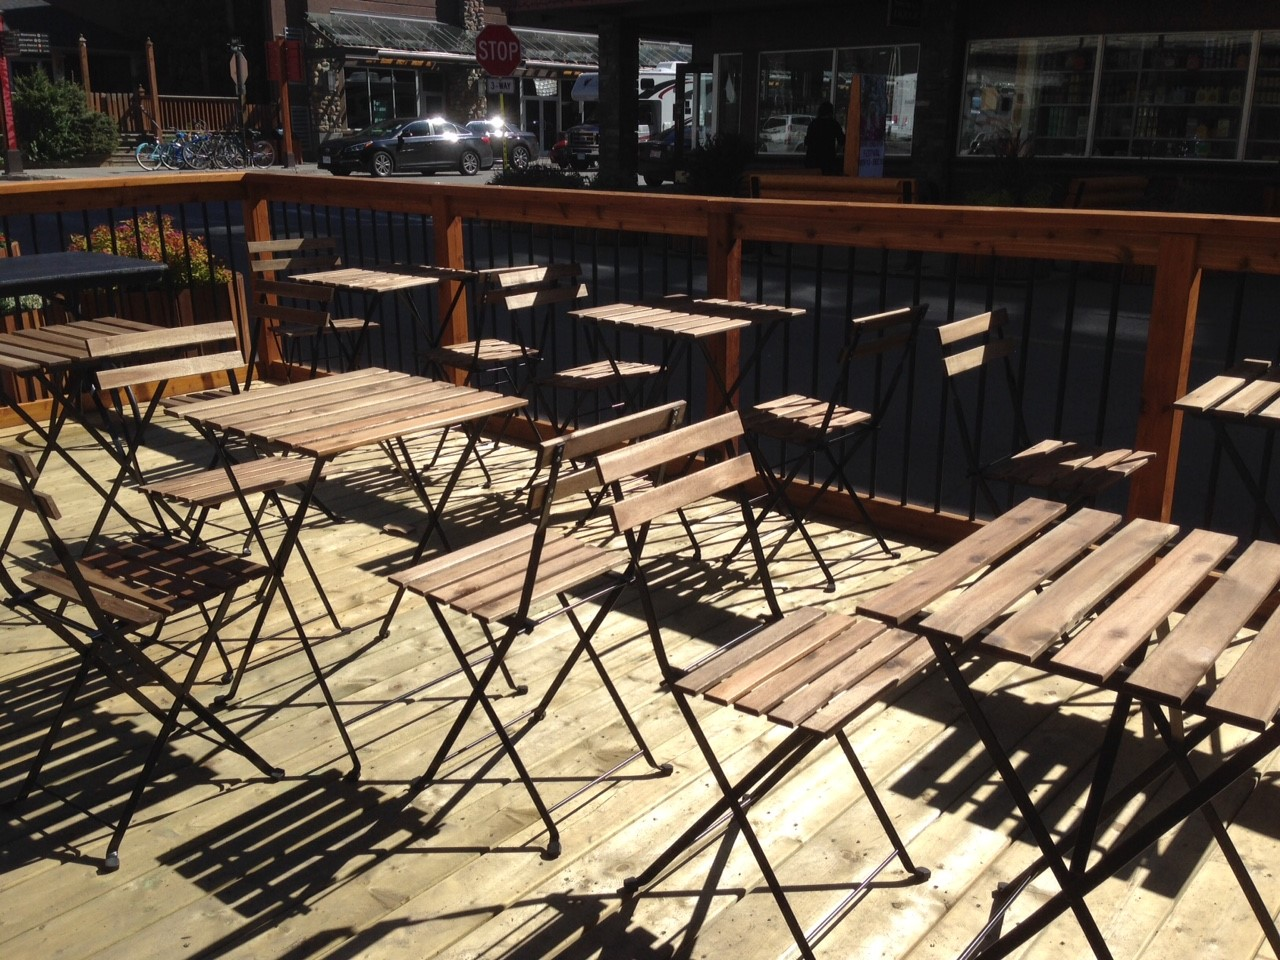 Wooden Tables and Seats in a Public Area